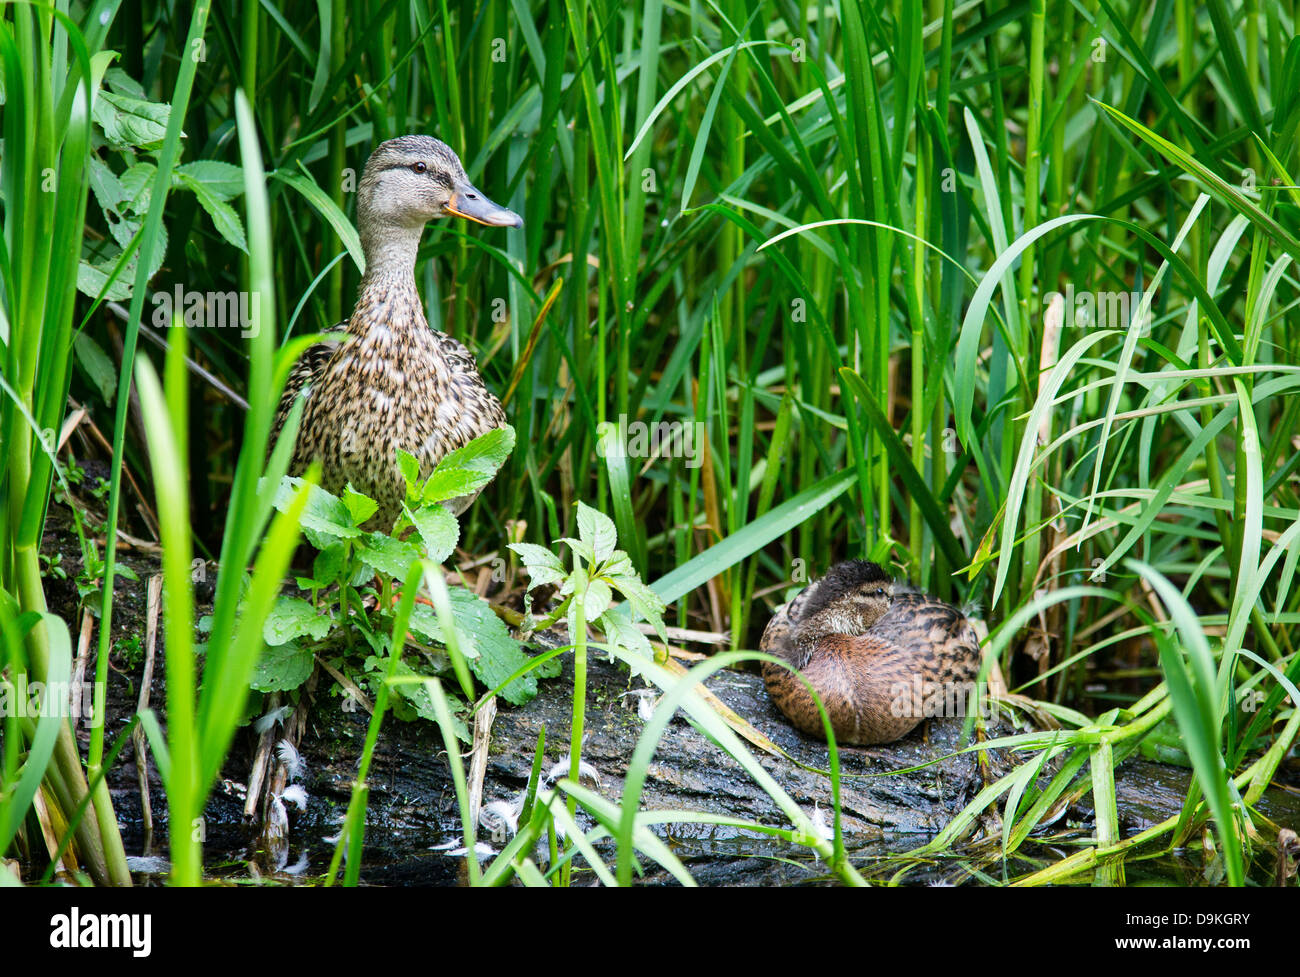 Mallard duck females amongst vegetation on the banks of the Cromford canal in Derbyshire UK - Stock Image